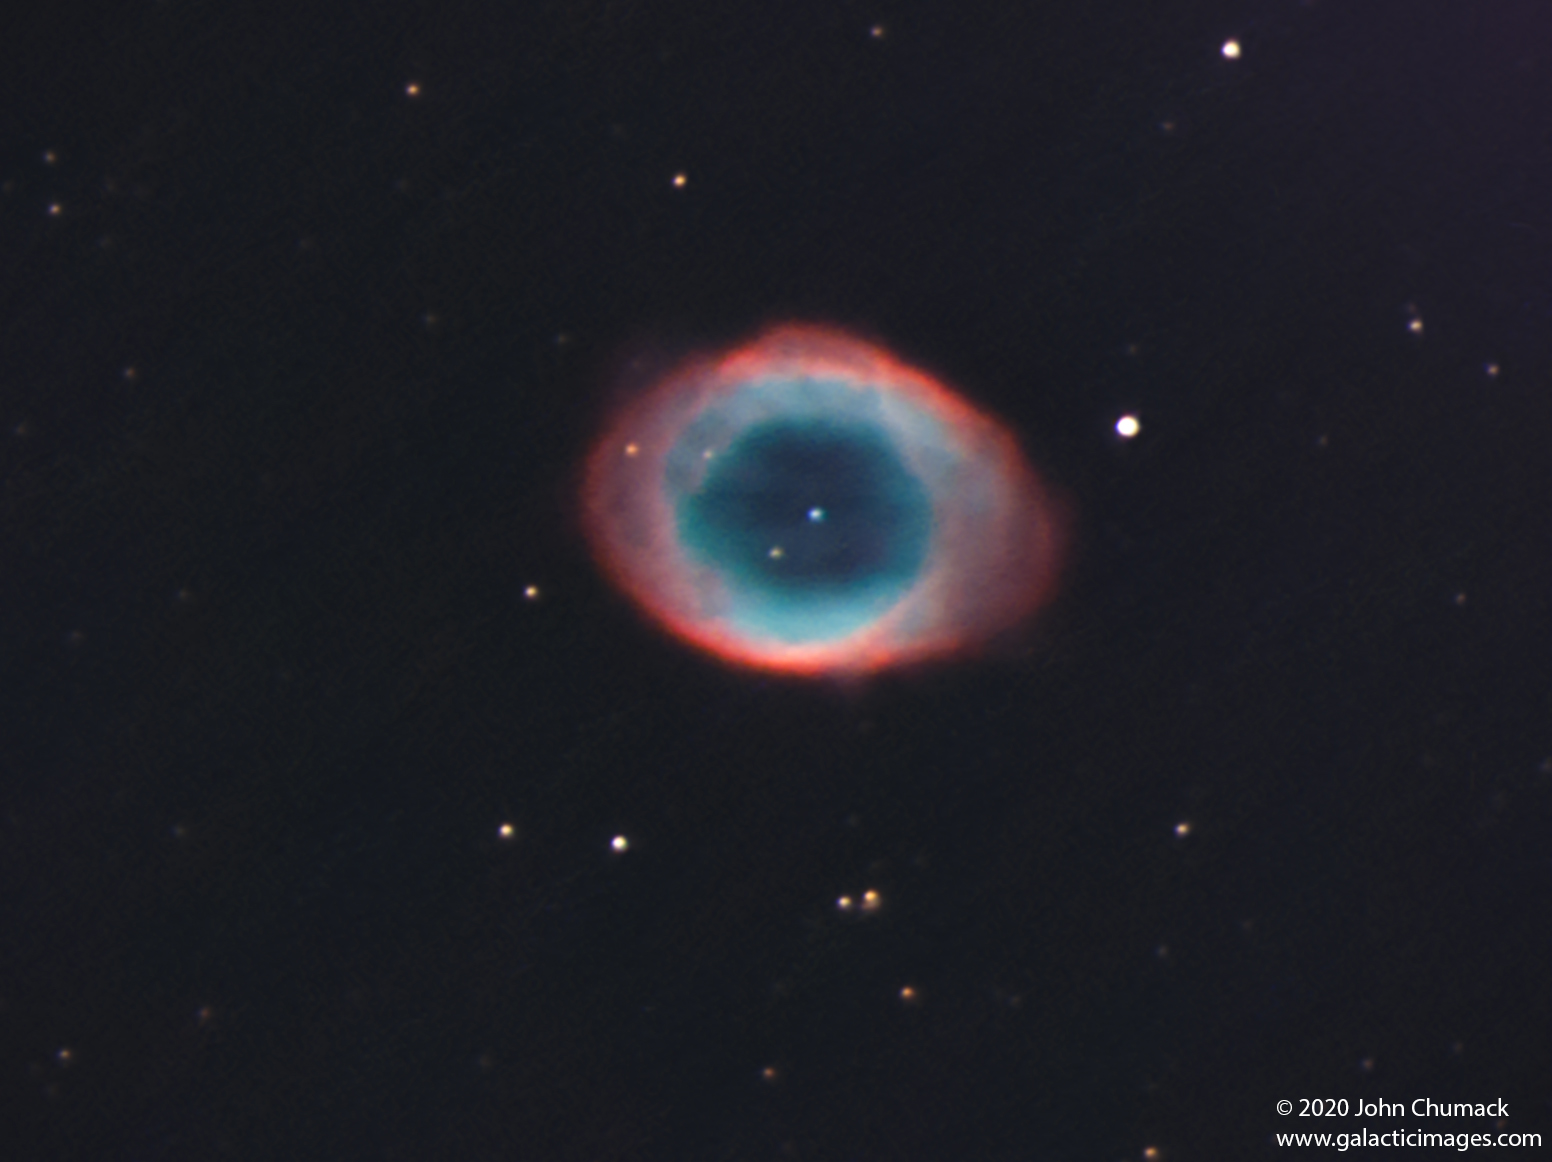 M57 The Ring Nebula - Planetary nebula - A Dying Star in Lyra